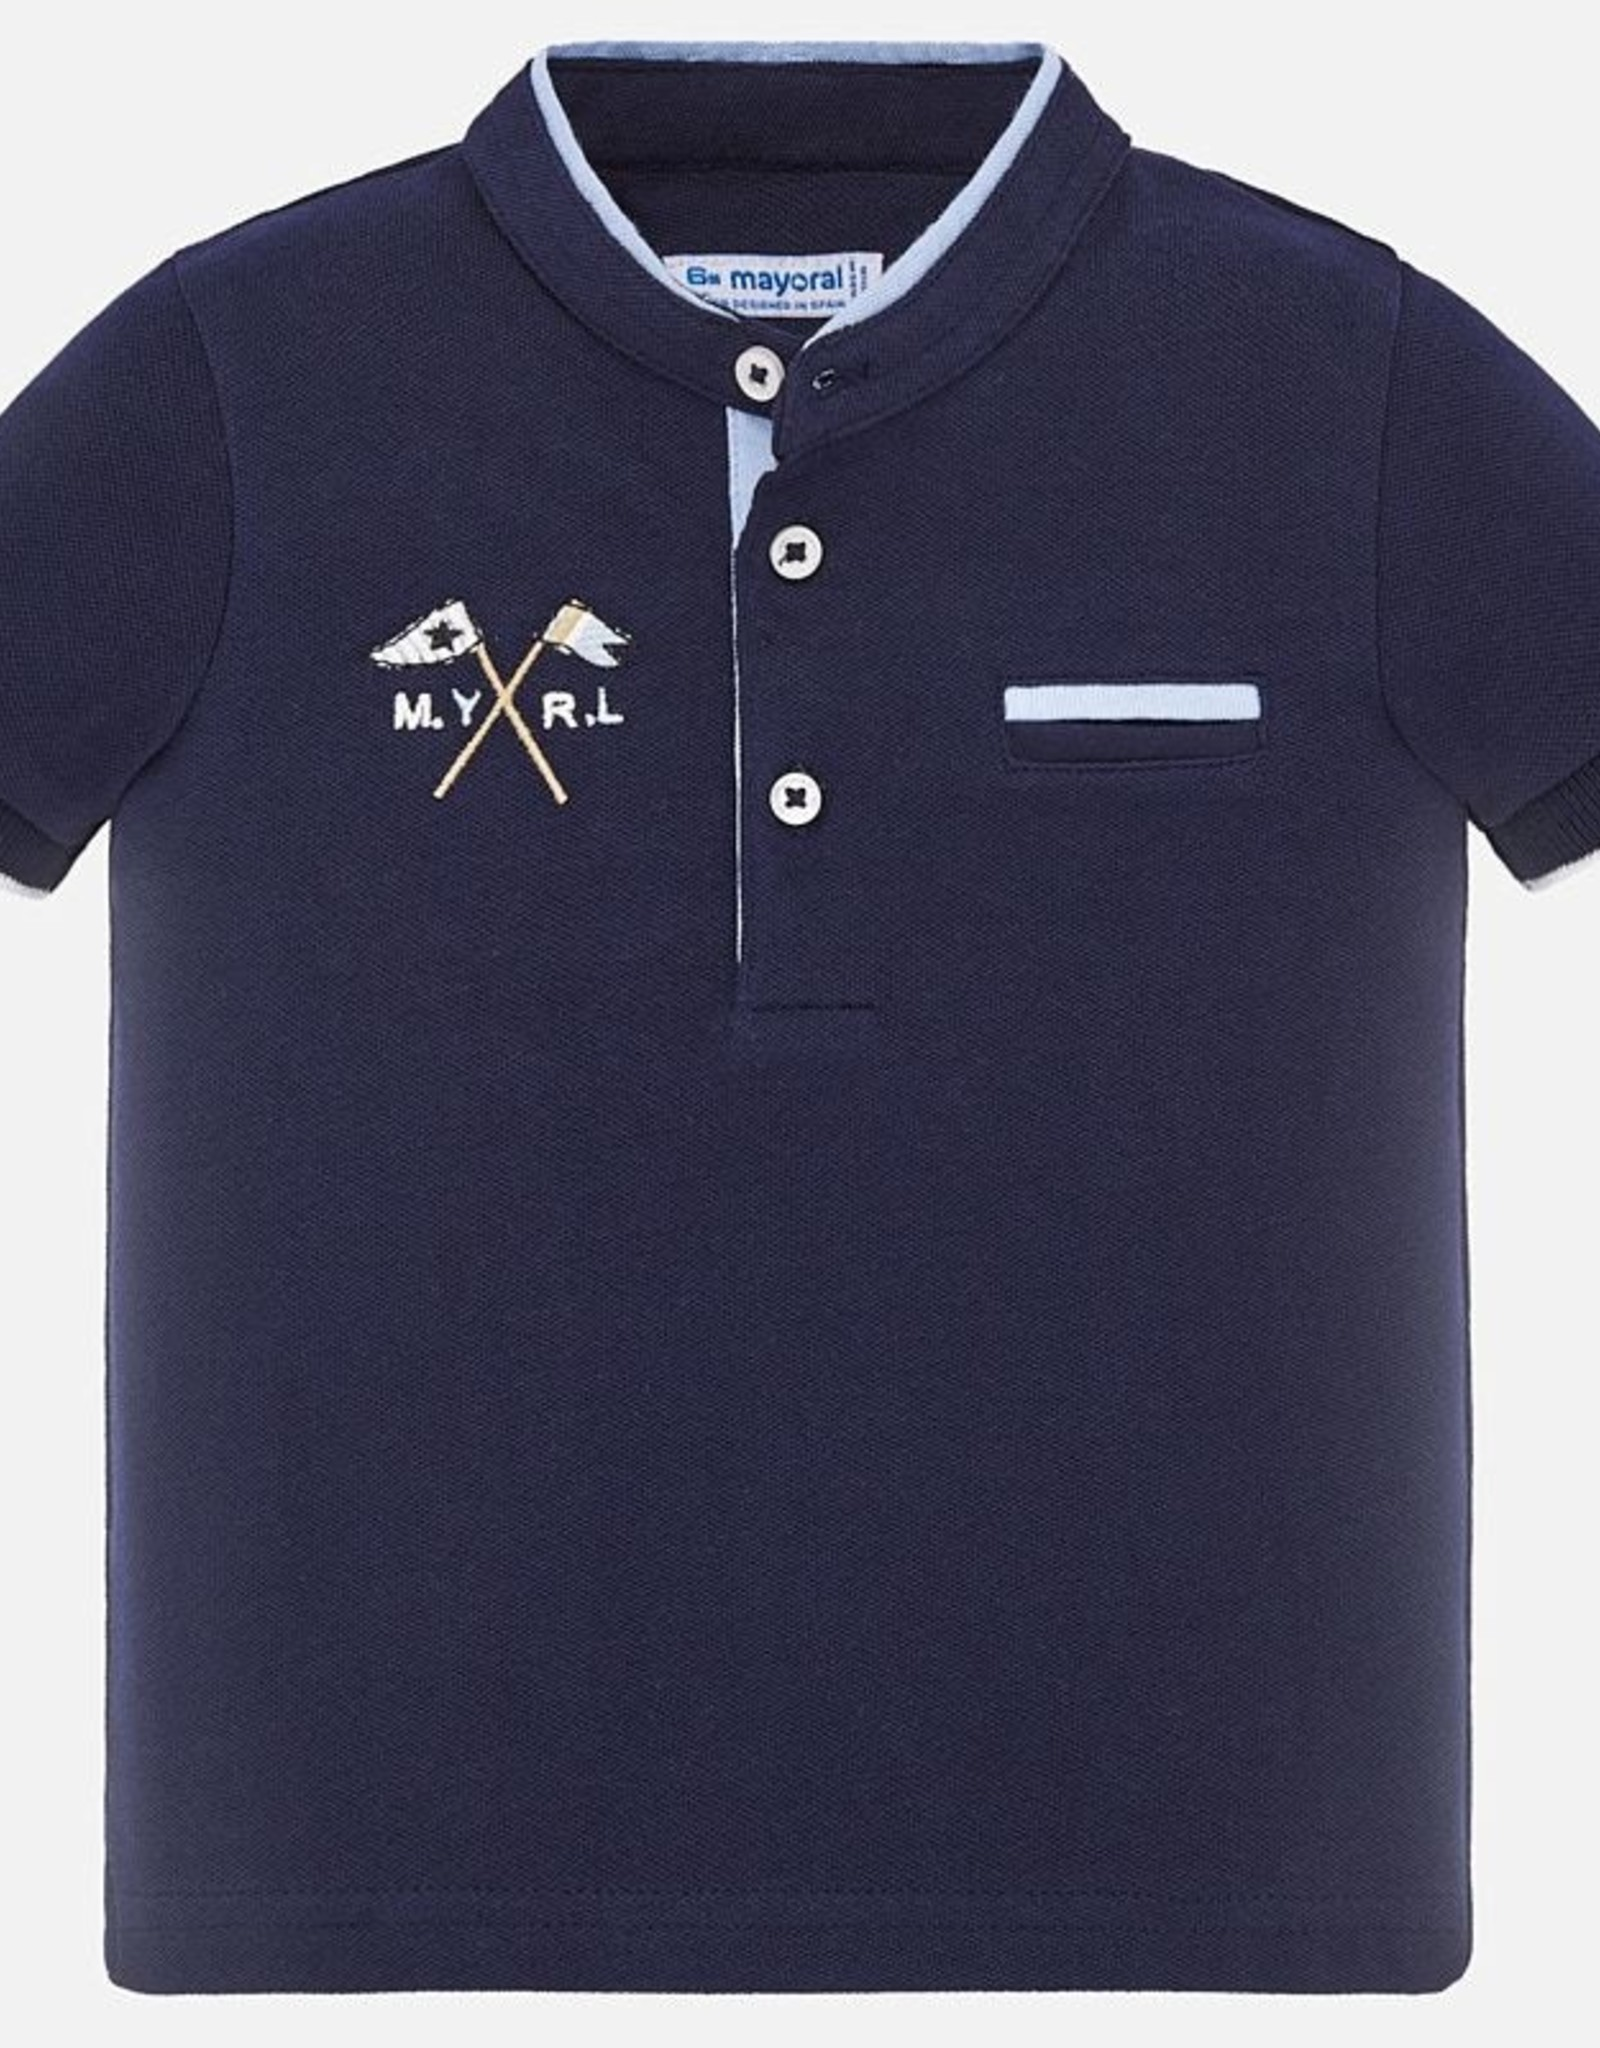 Mayoral Polo navy shirt